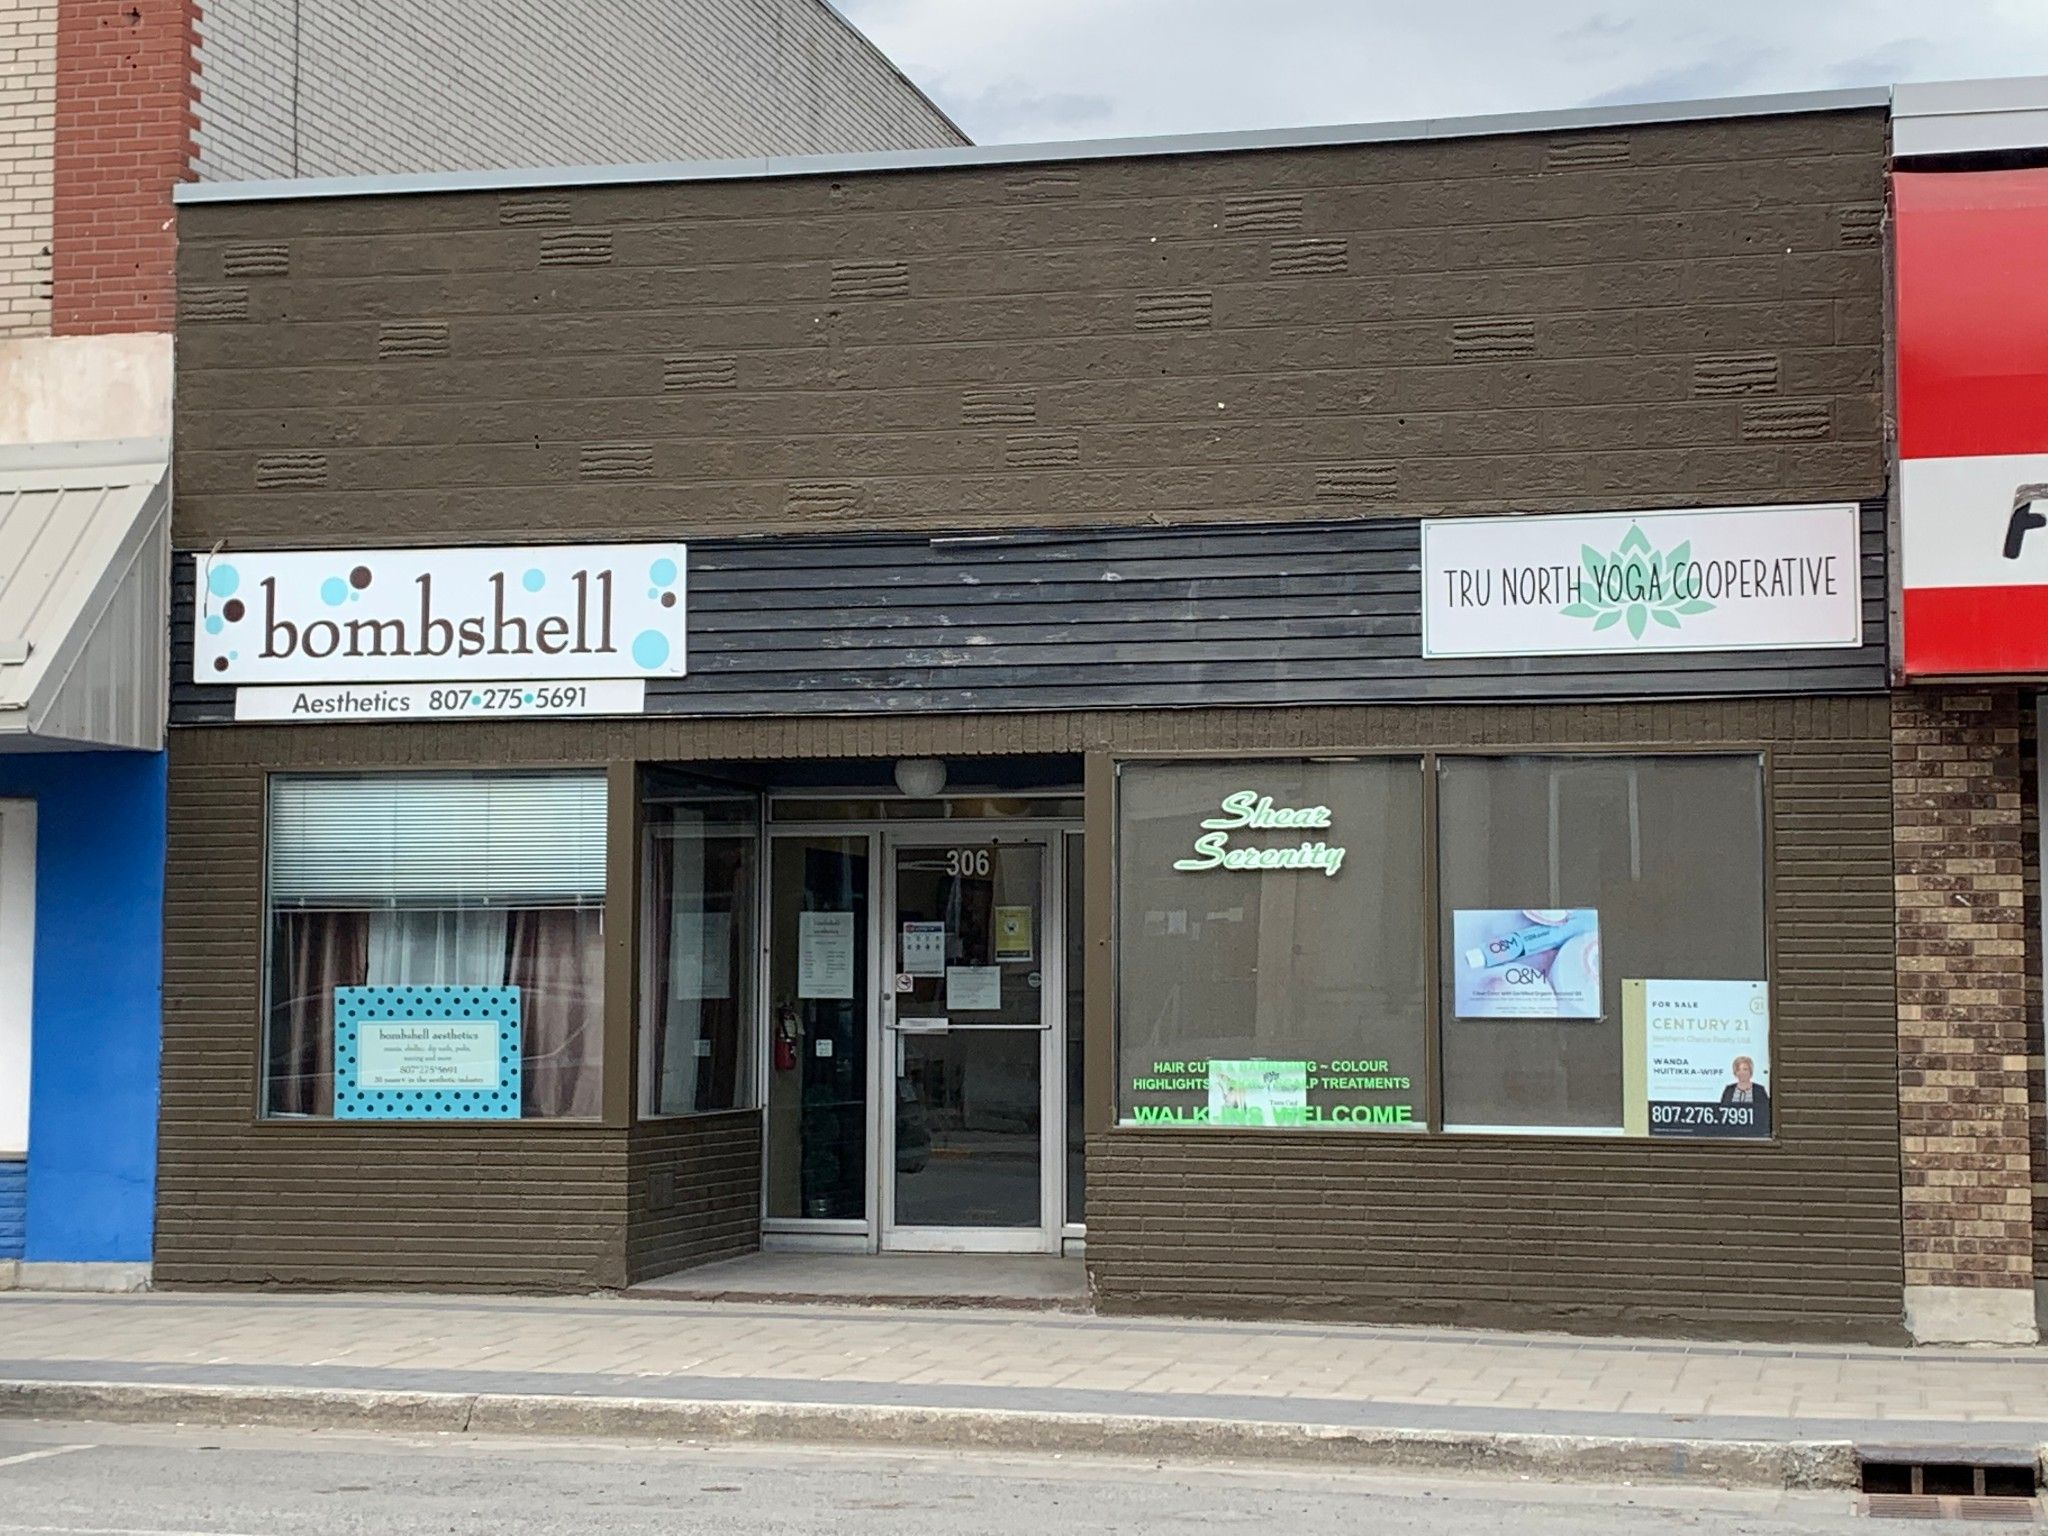 Main Photo: 306 Scott ST in Fort Frances: Retail for sale : MLS®# TB193903